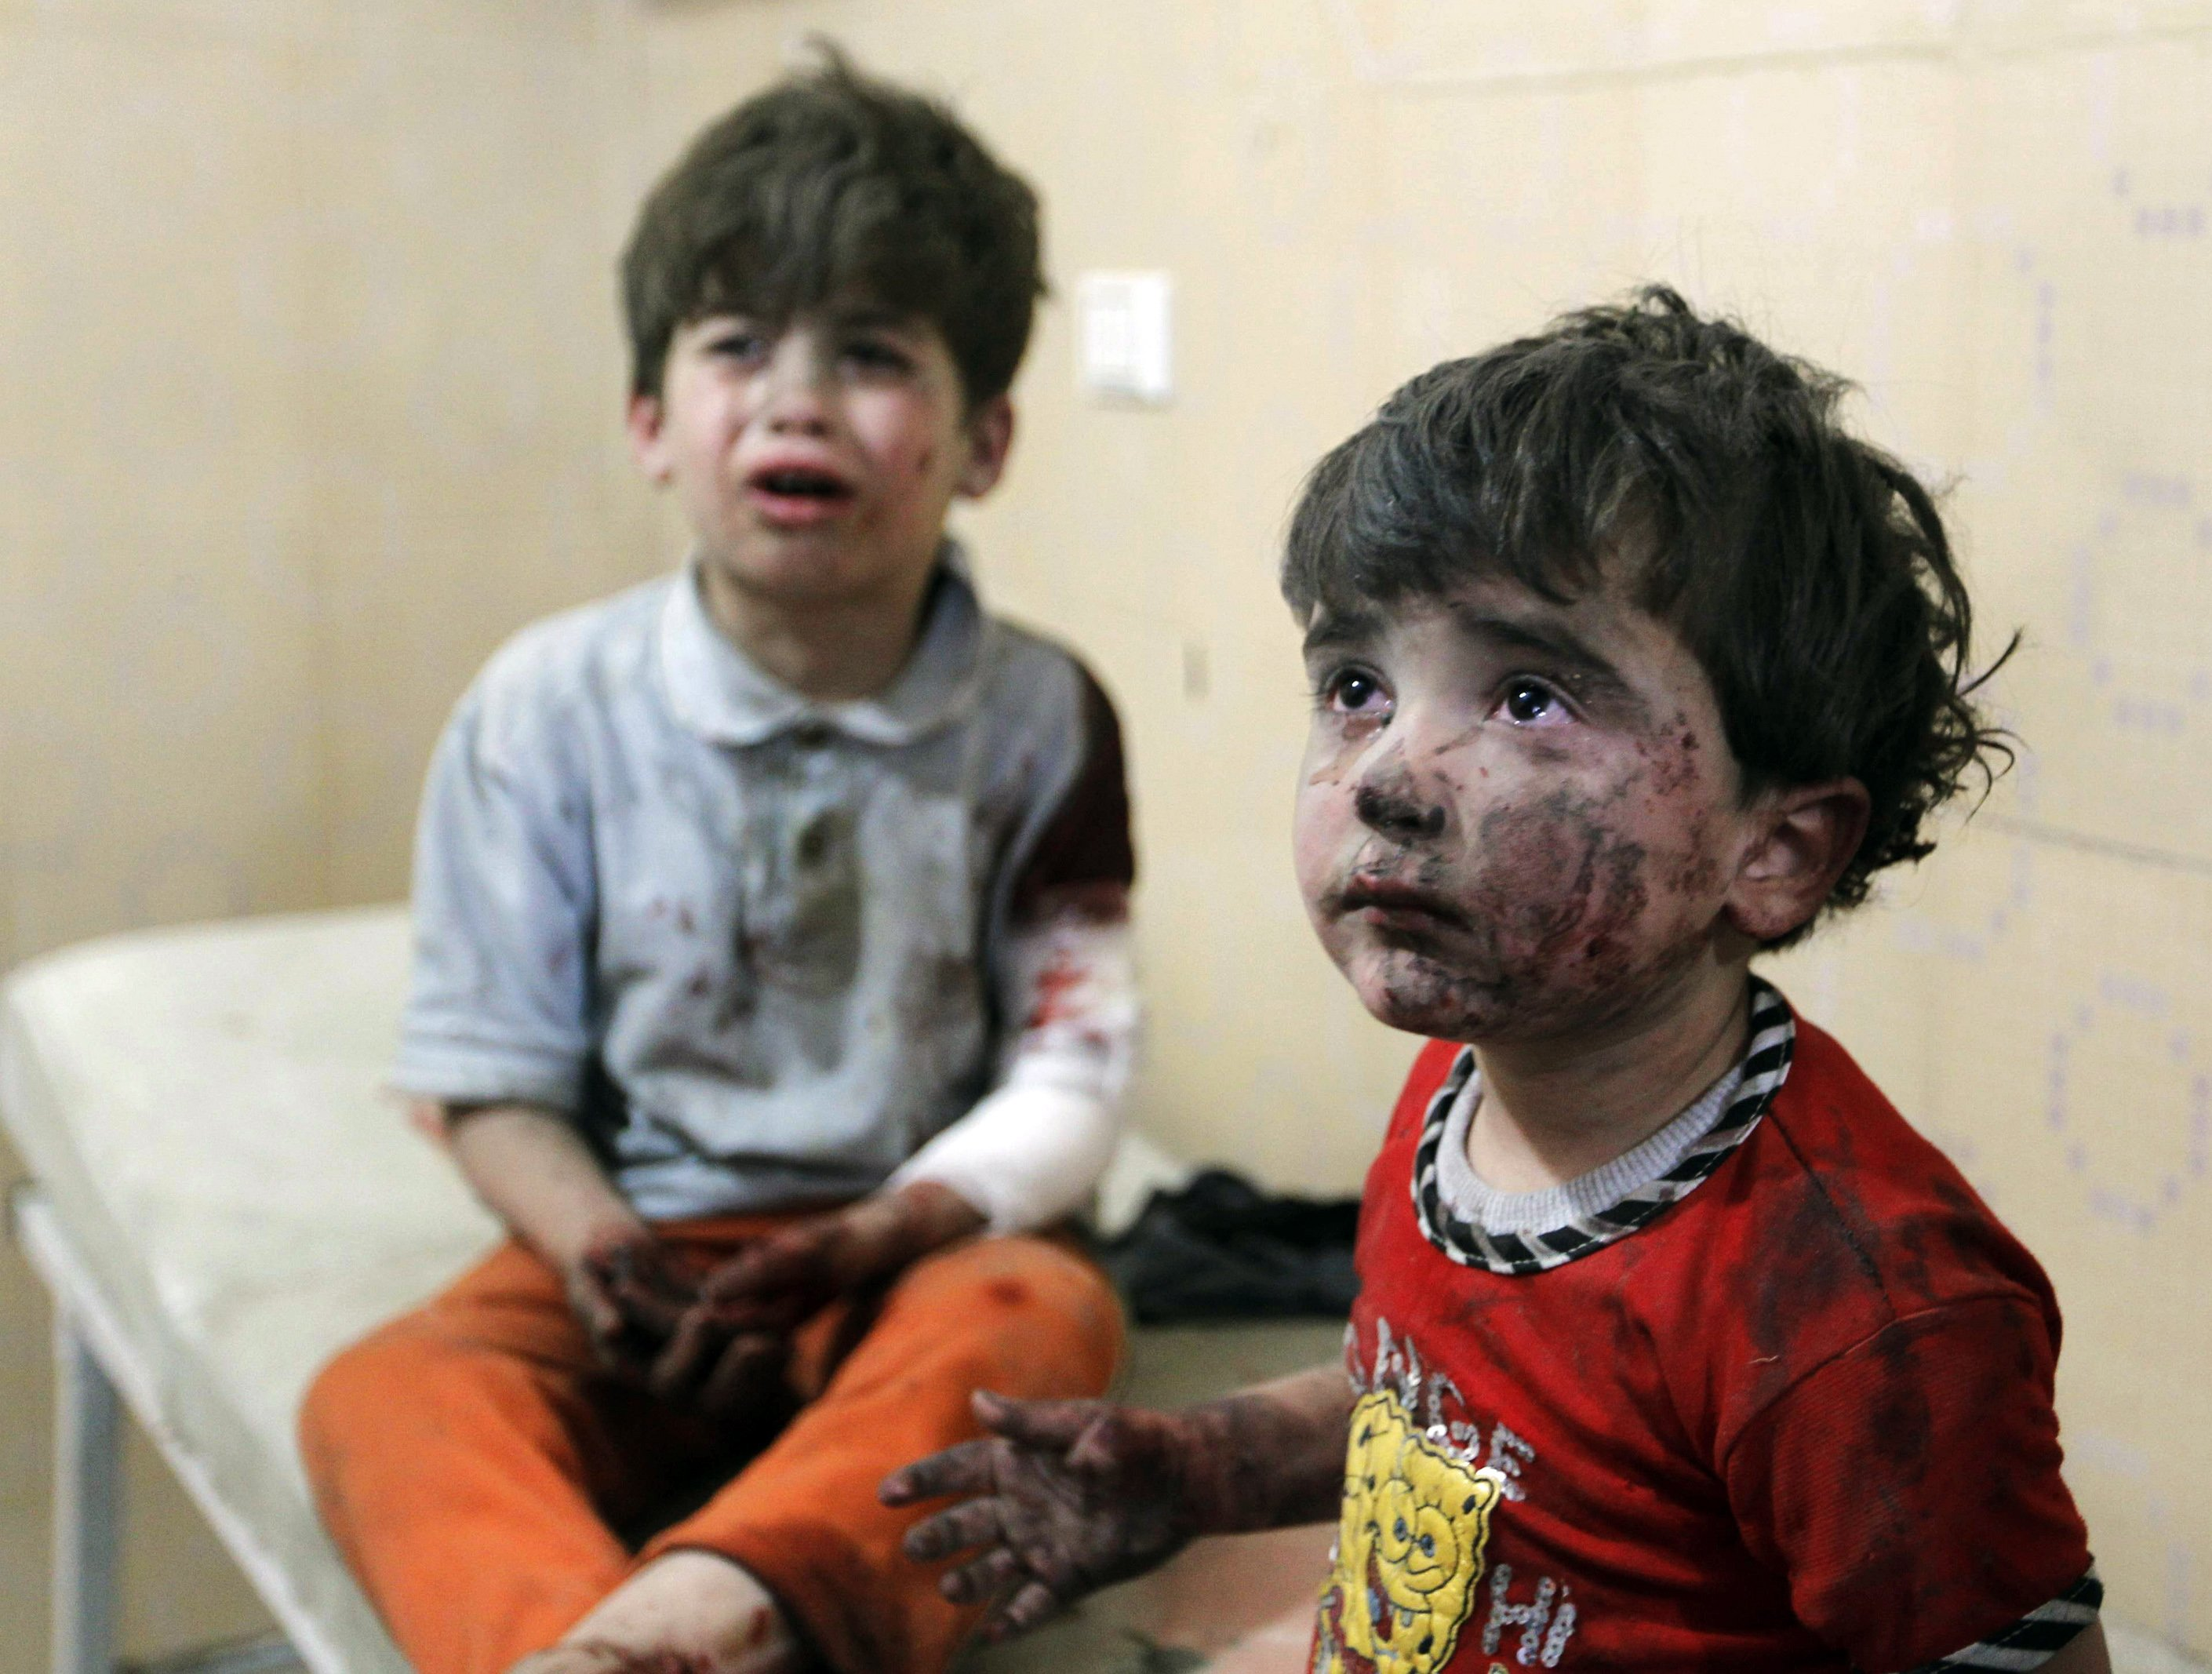 Injured children cry after, according to activists, two barrel bombs were thrown by forces loyal to Syria's president Bashar Al-Assad in Aleppo